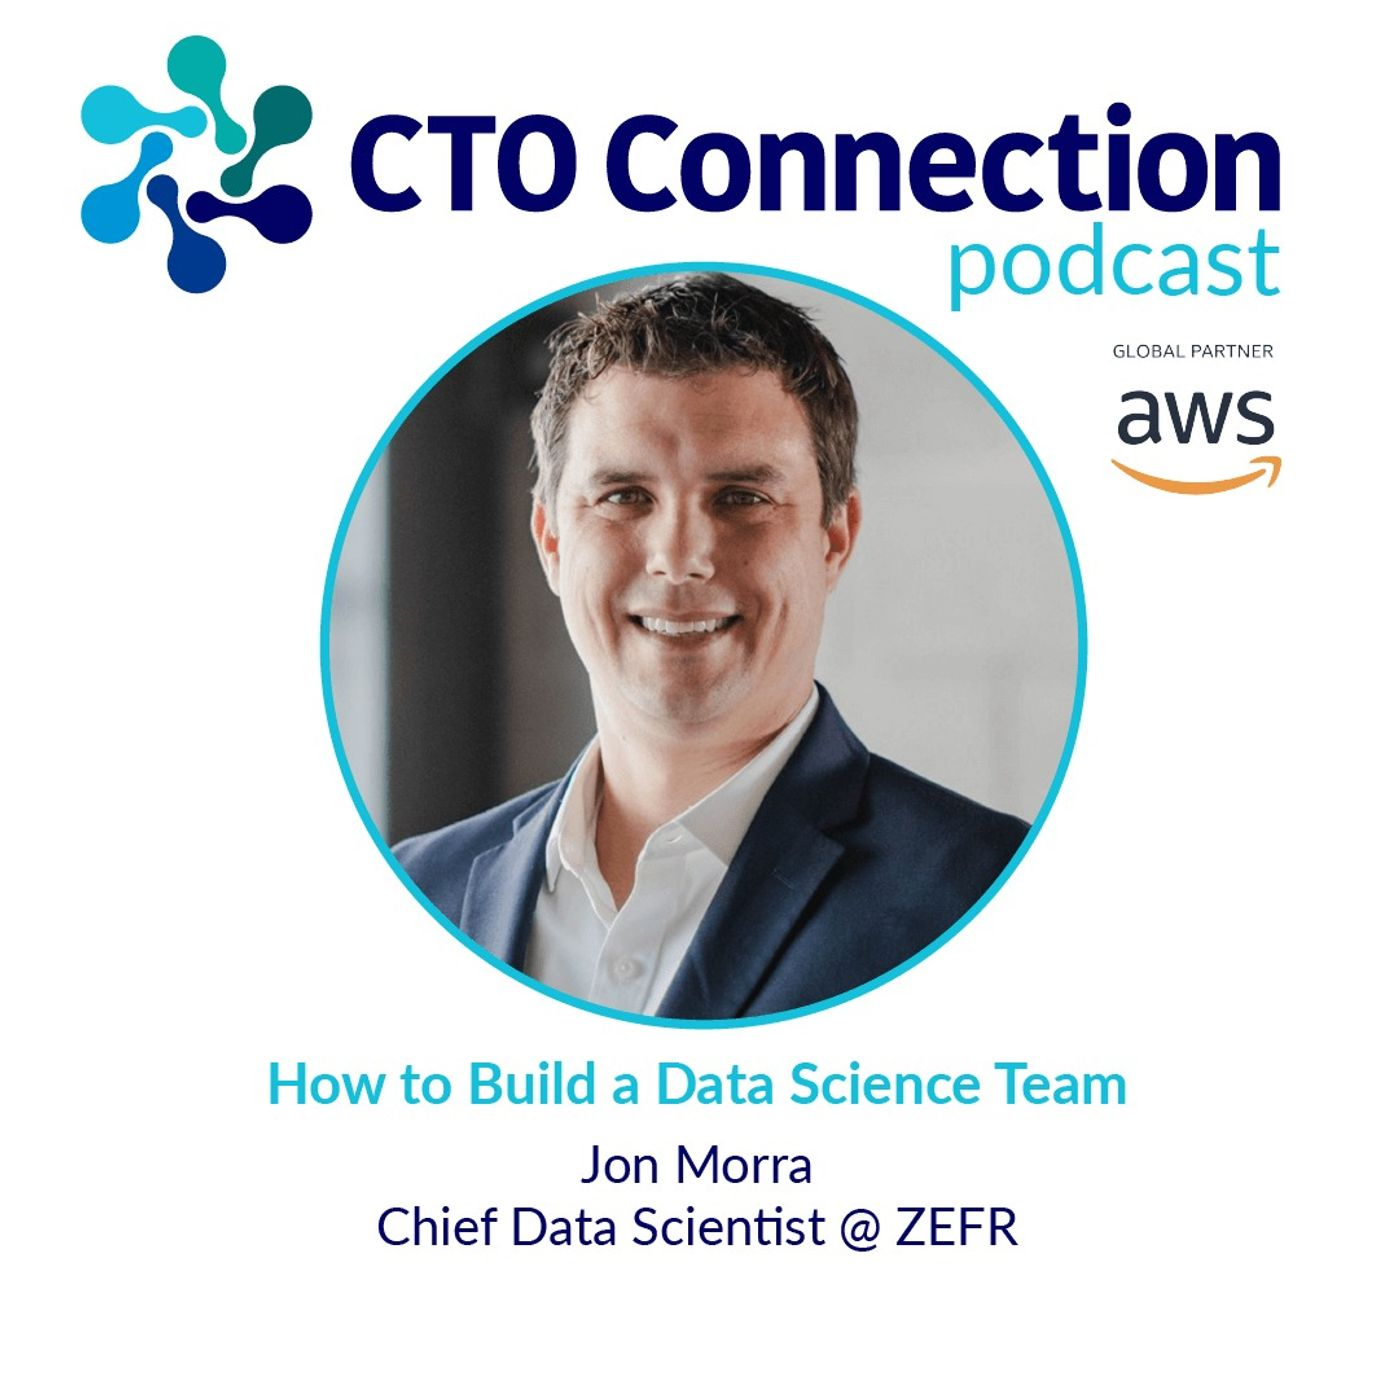 How to Build a Data Science Team with Jon Morra